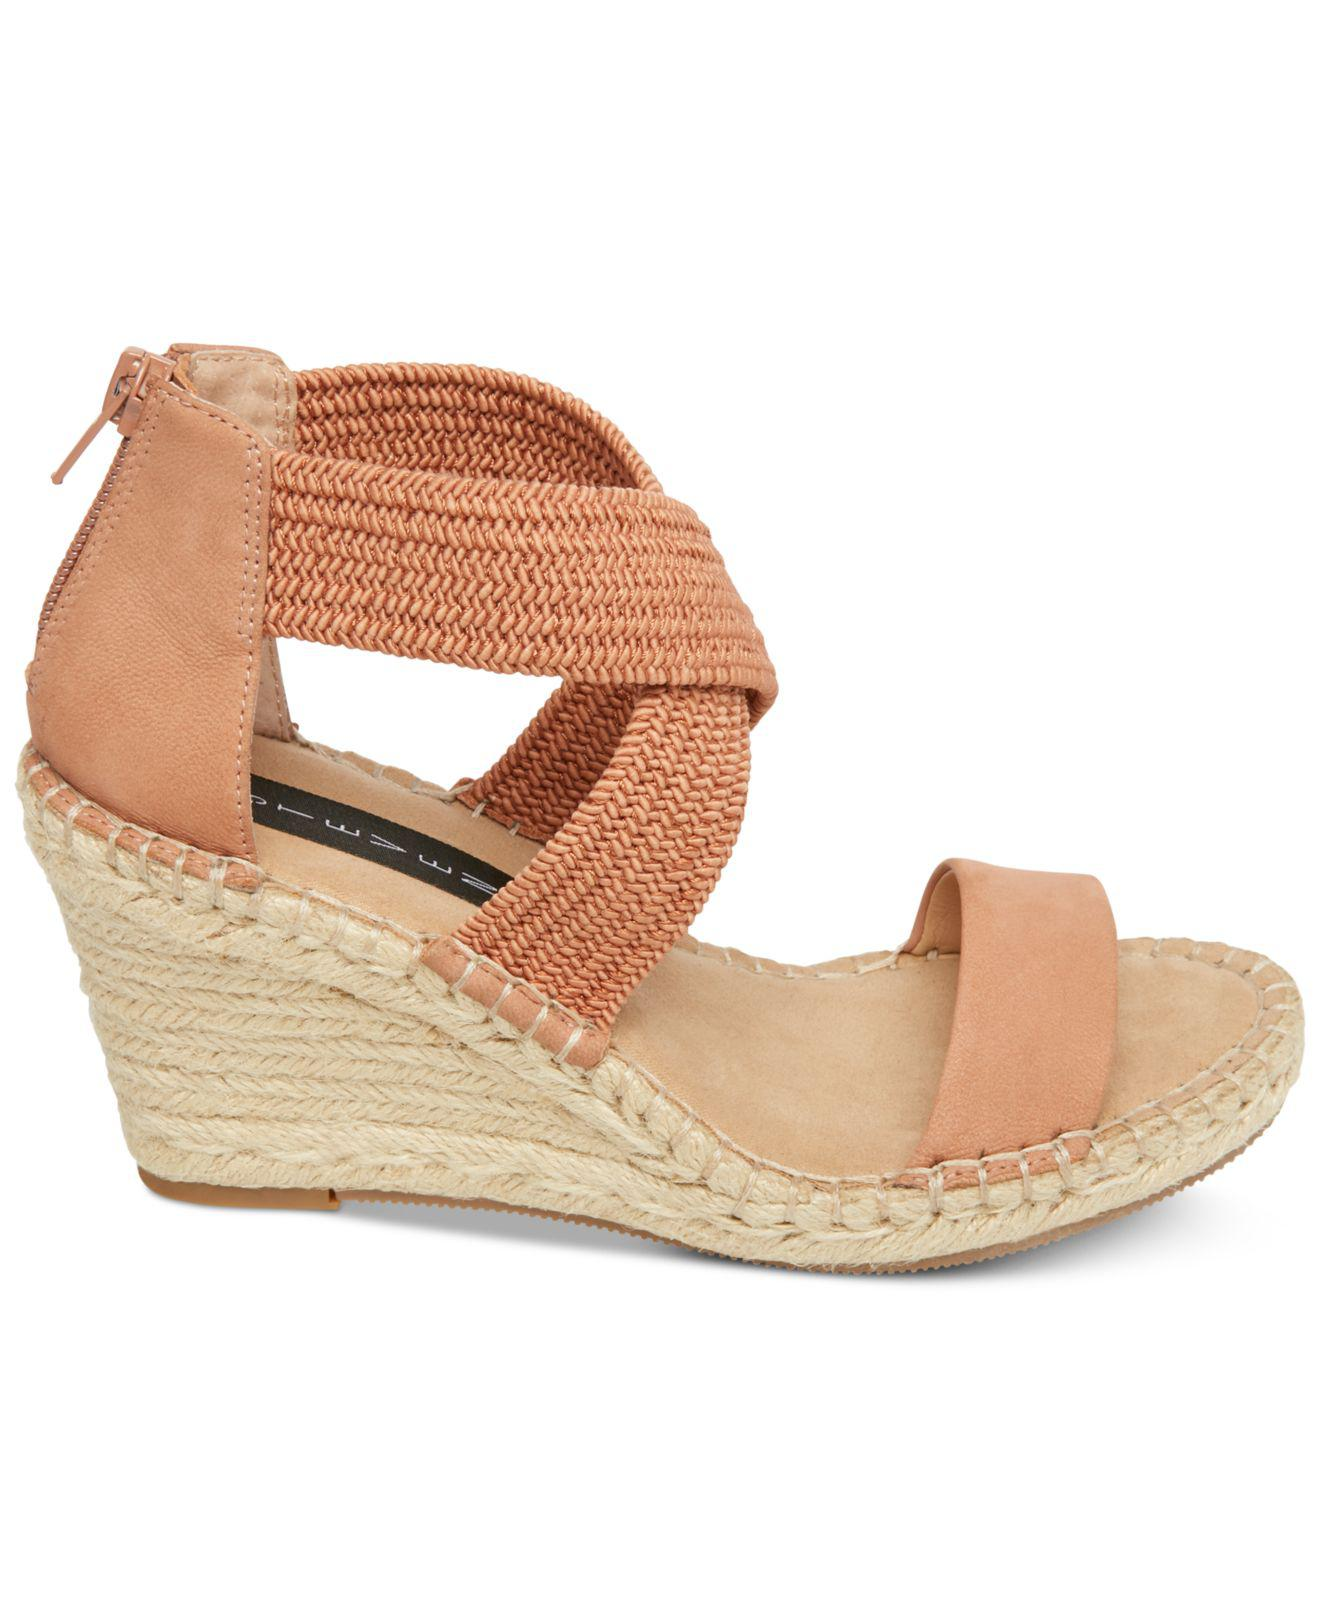 c32e357f2b7 Lyst - Steven by Steve Madden Excited Wedge Sandals